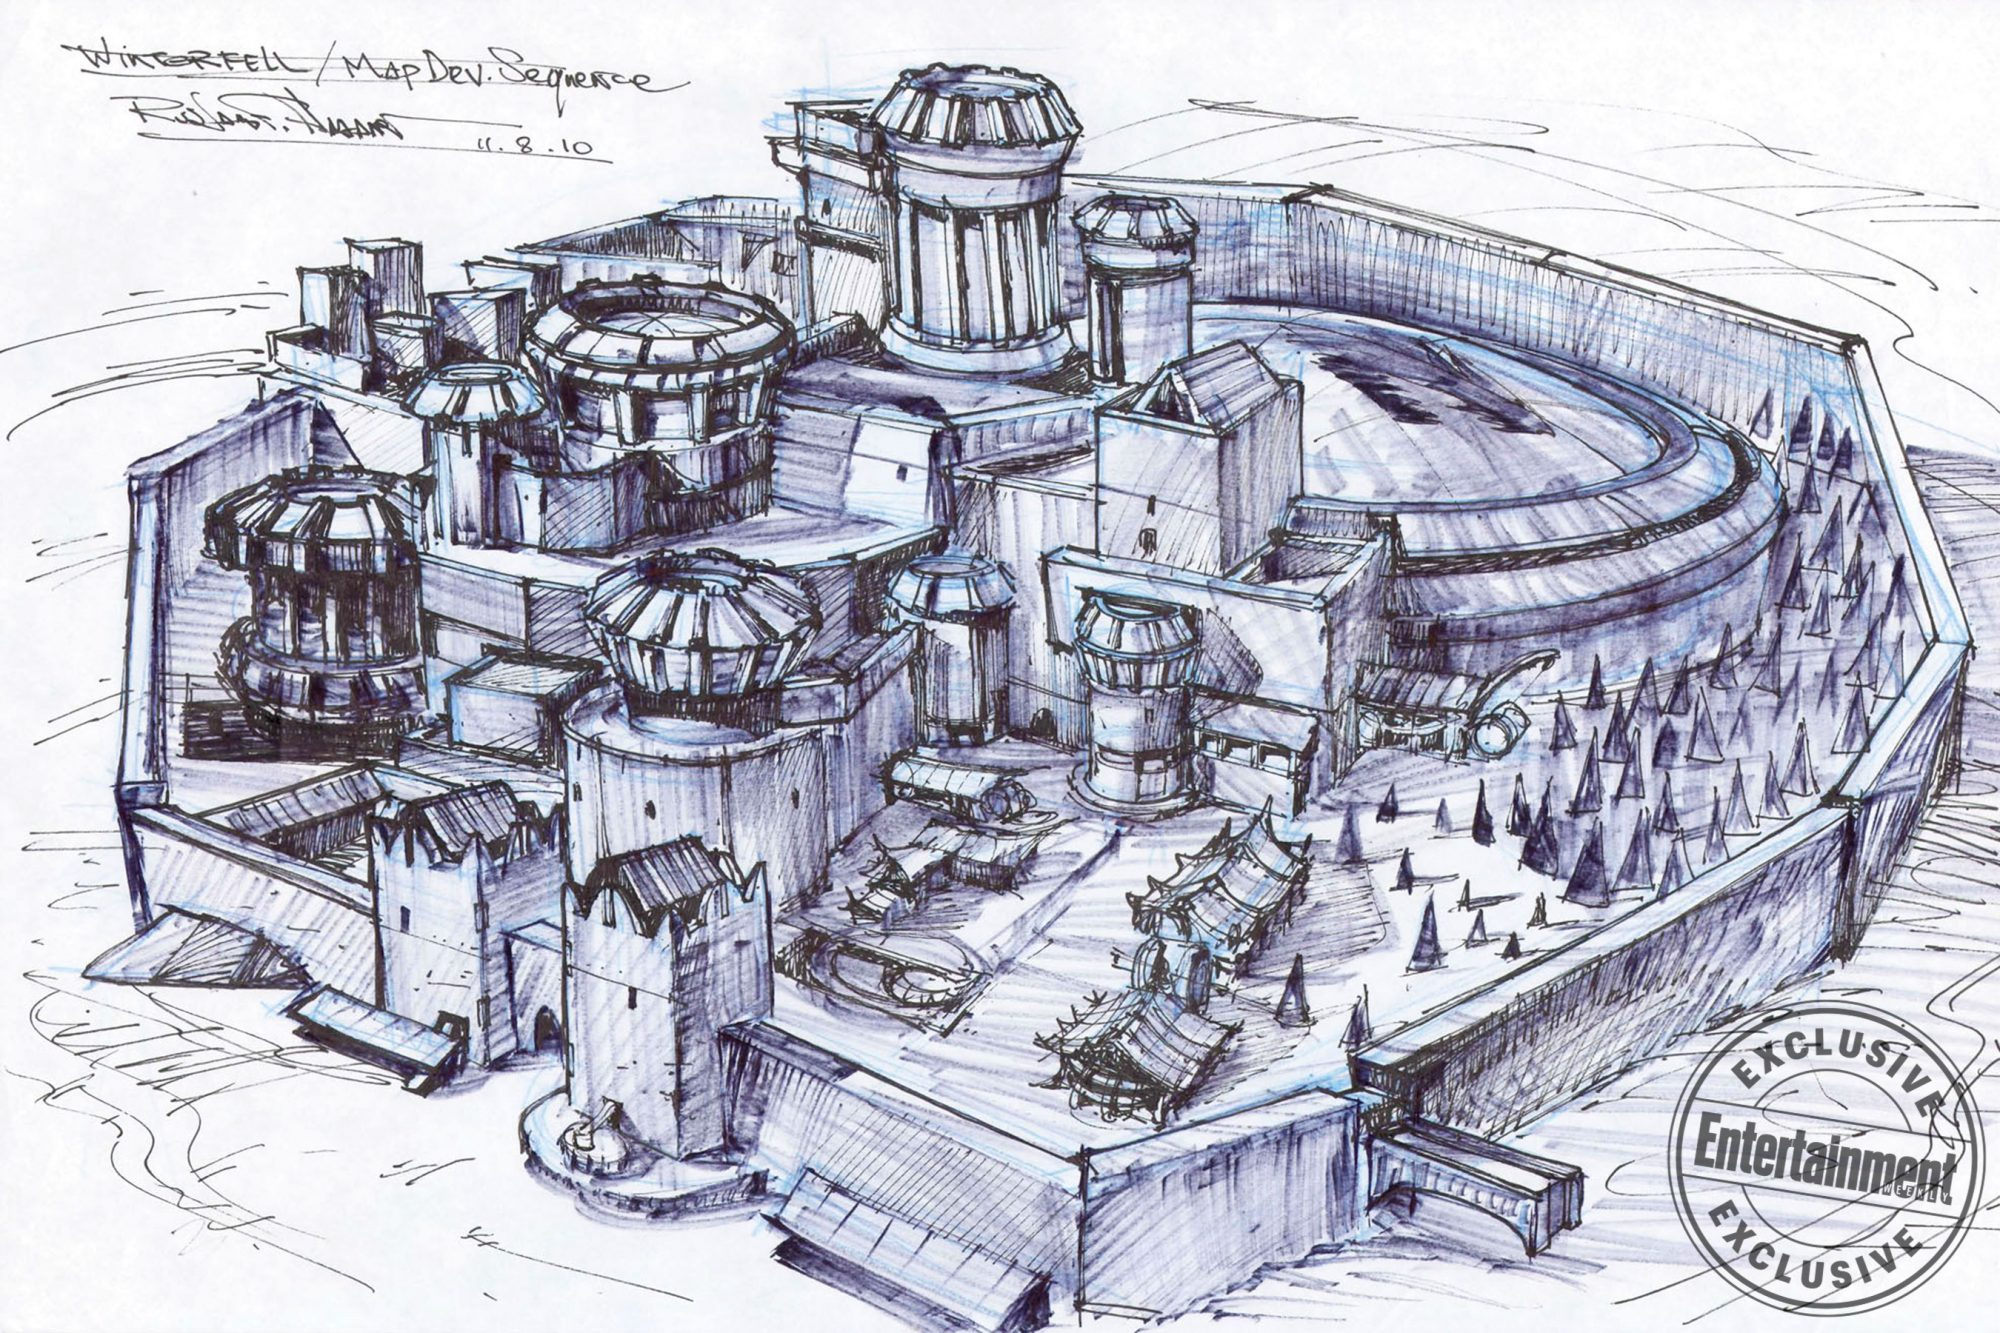 Game of ThronesTitle SequenceWinterfell Concept Art